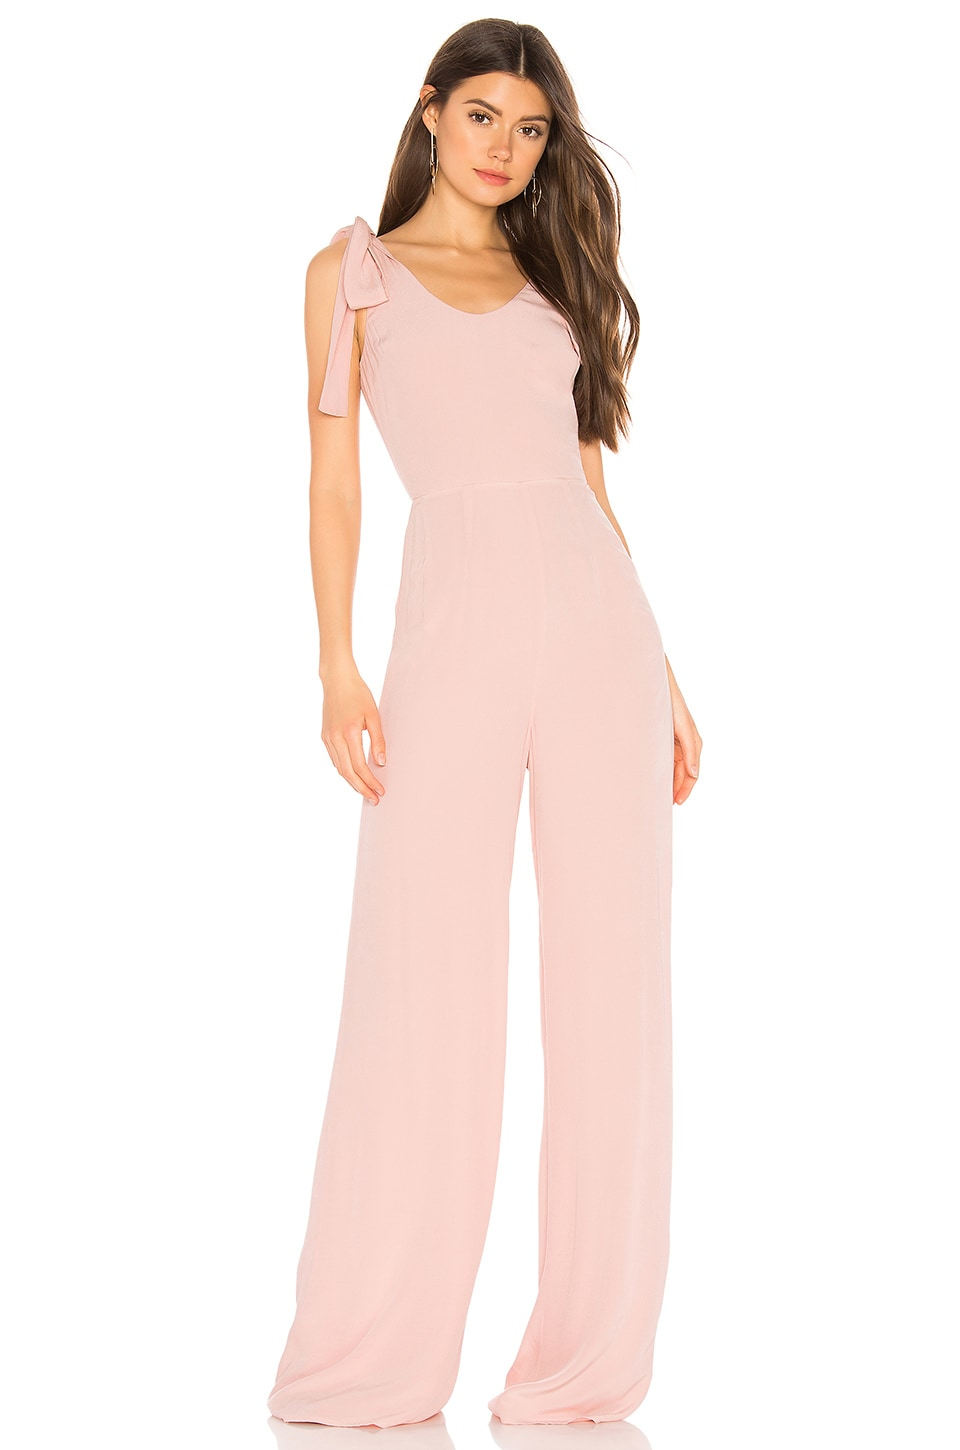 Lovers + Friends Janice Jumpsuit in Blush